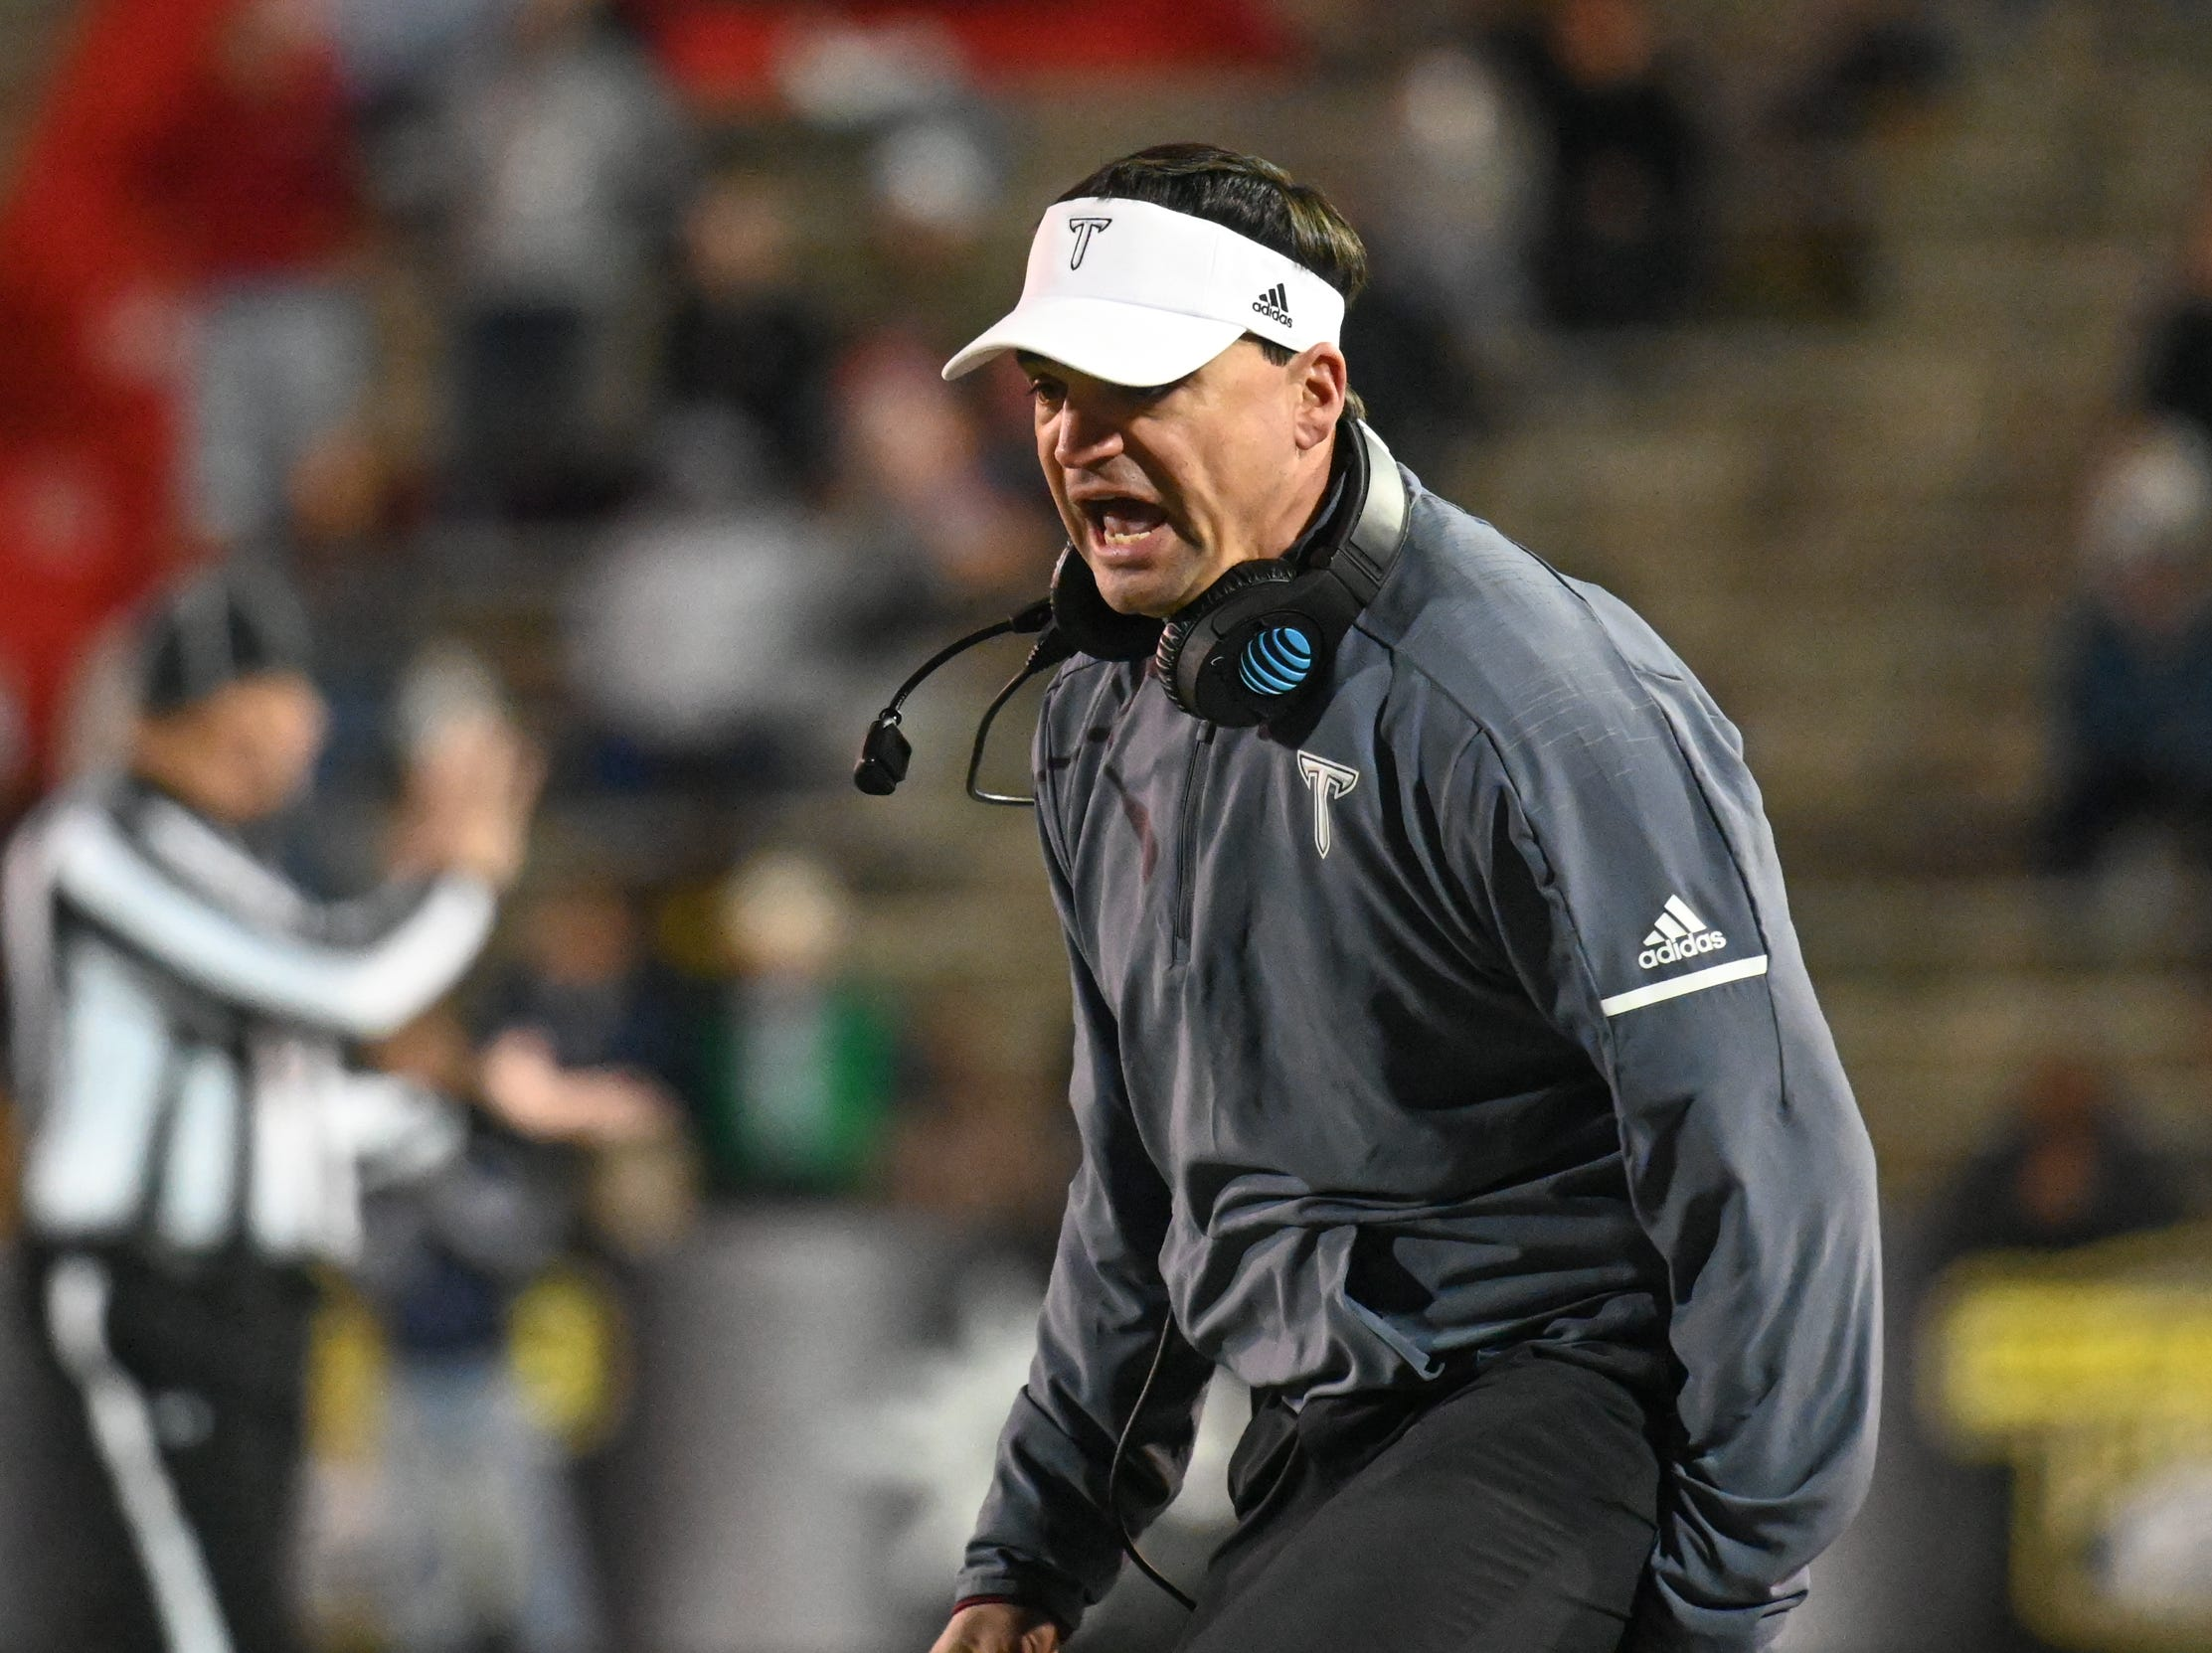 Troy head coach Neal Brown shows his disgust with a call against Troy during the Dollar General Bowl held at Ladd-Peebles Stadium in Mobile on Saturday, Dec. 22, 2018.